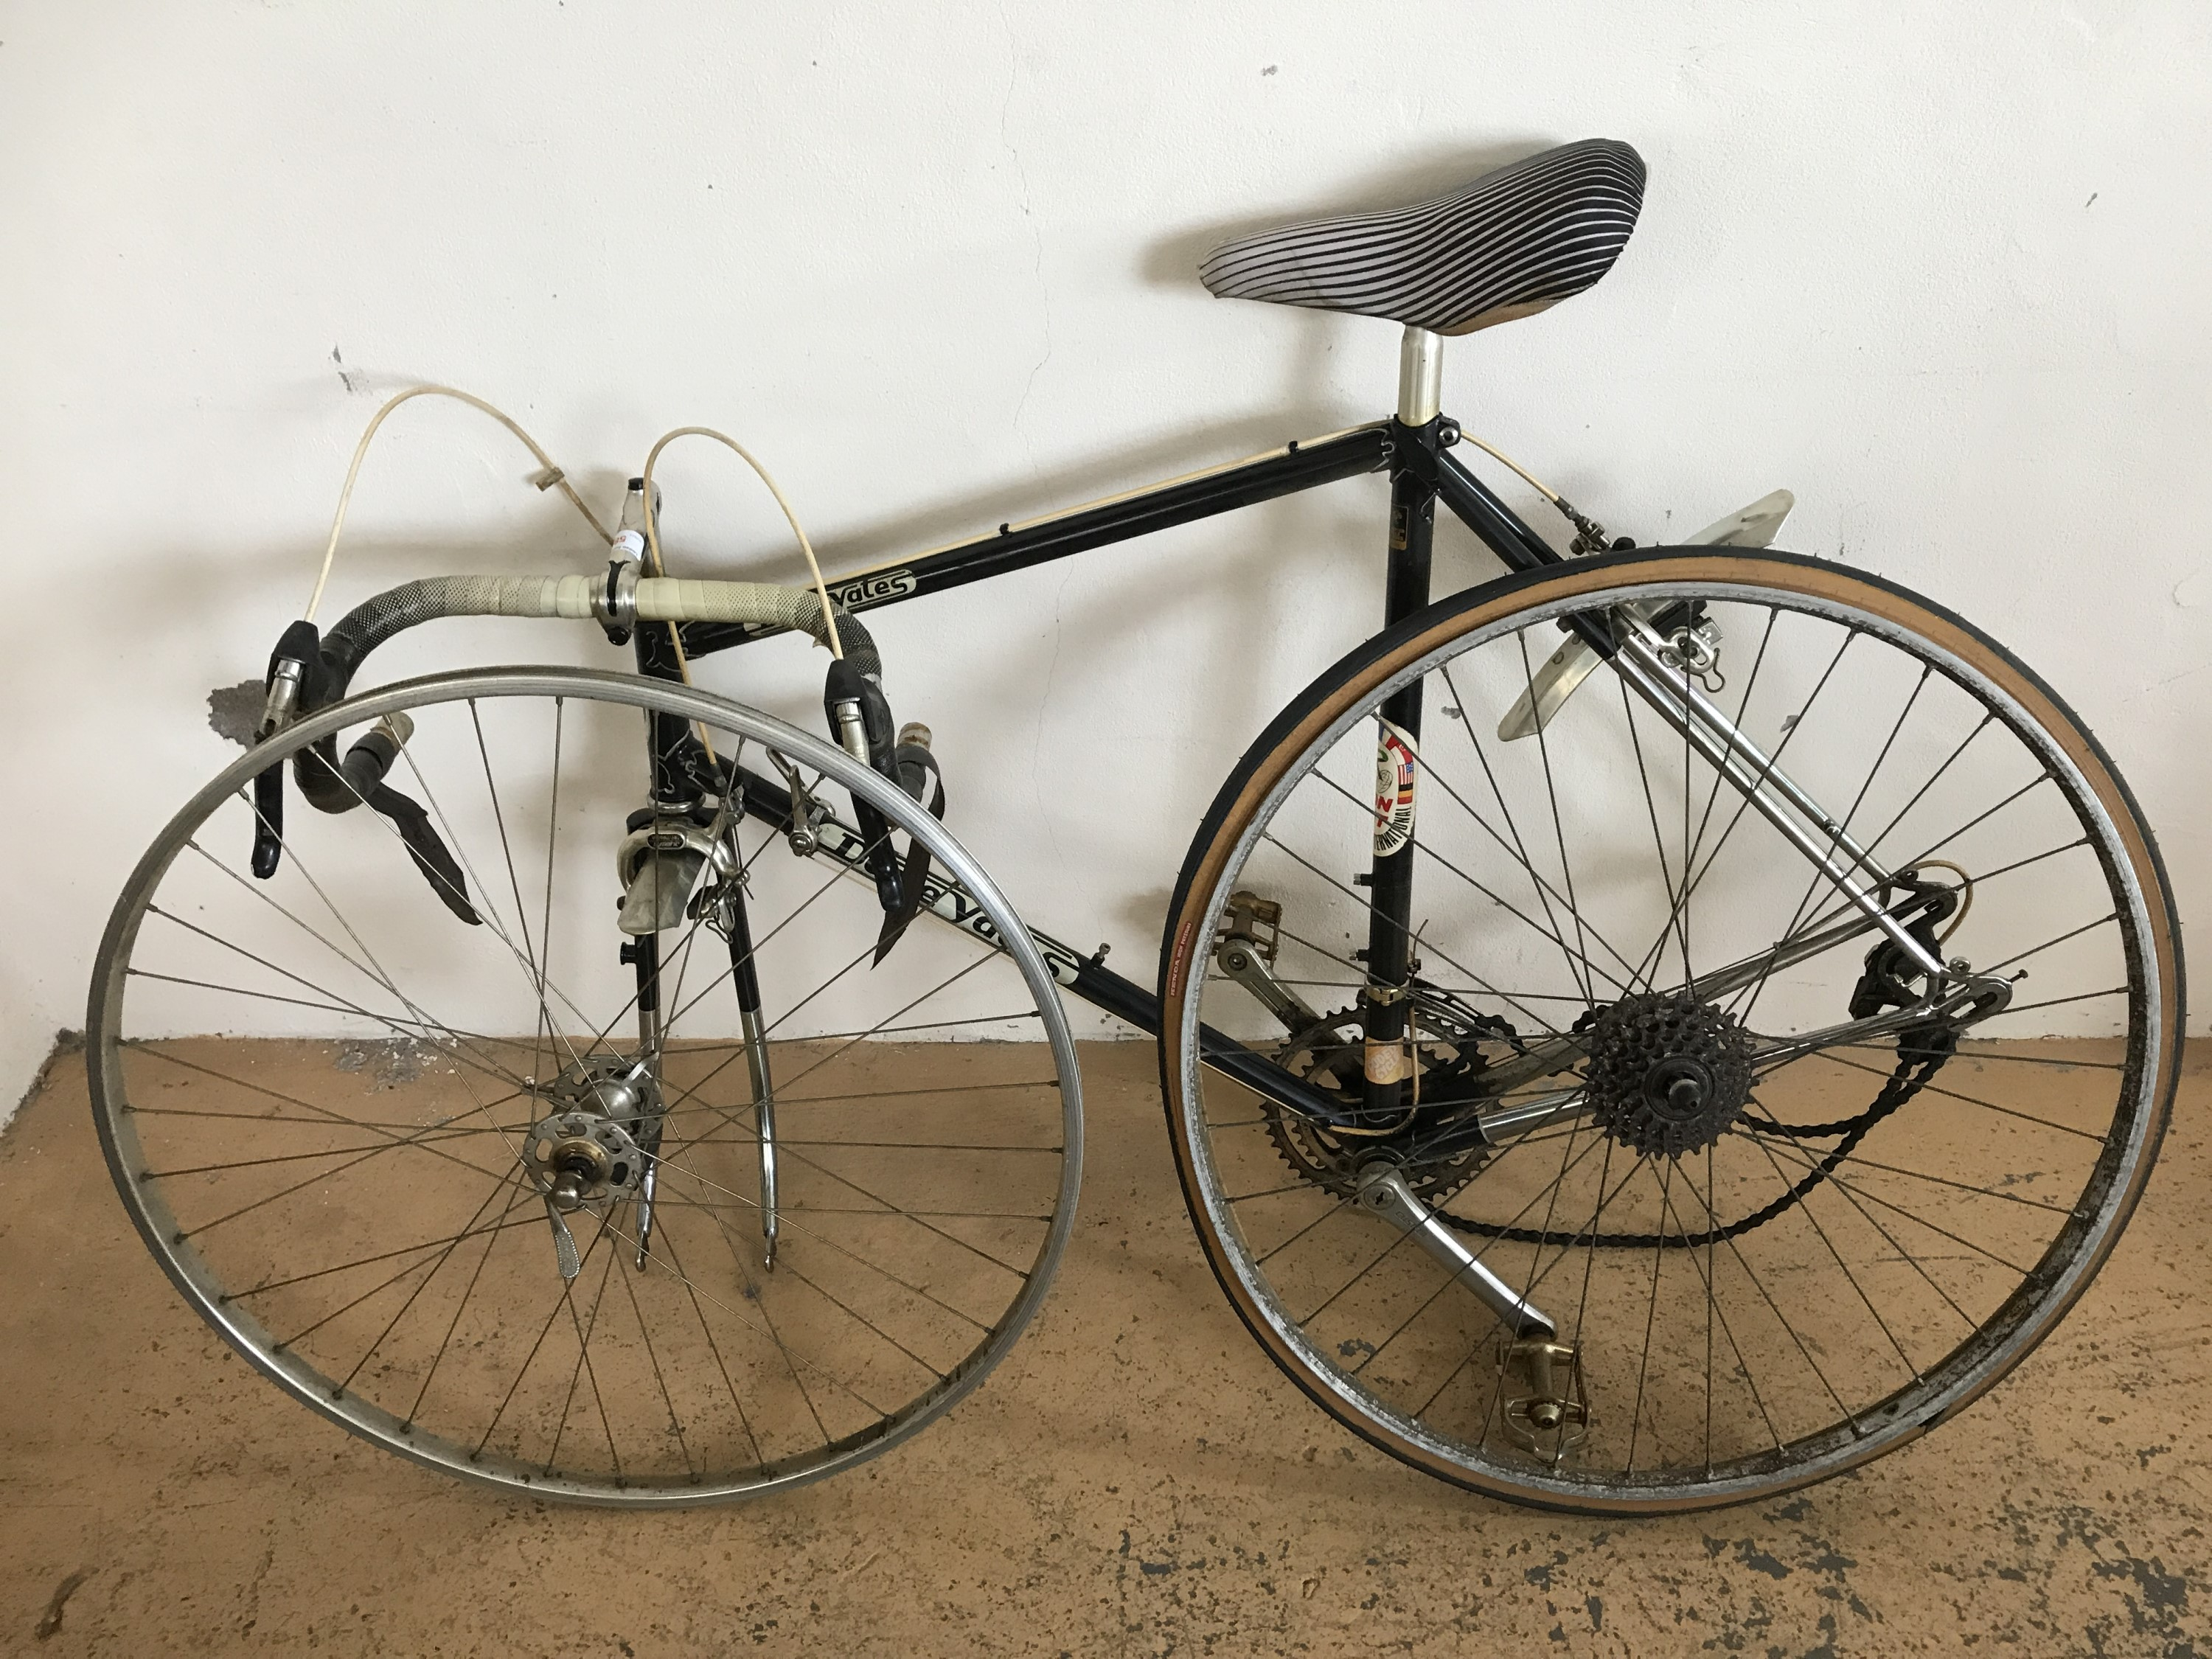 Lot 58 - A Dave Yates racer bicycle, in Reynolds 501 lightweight tubing, circa 1970s-1980s